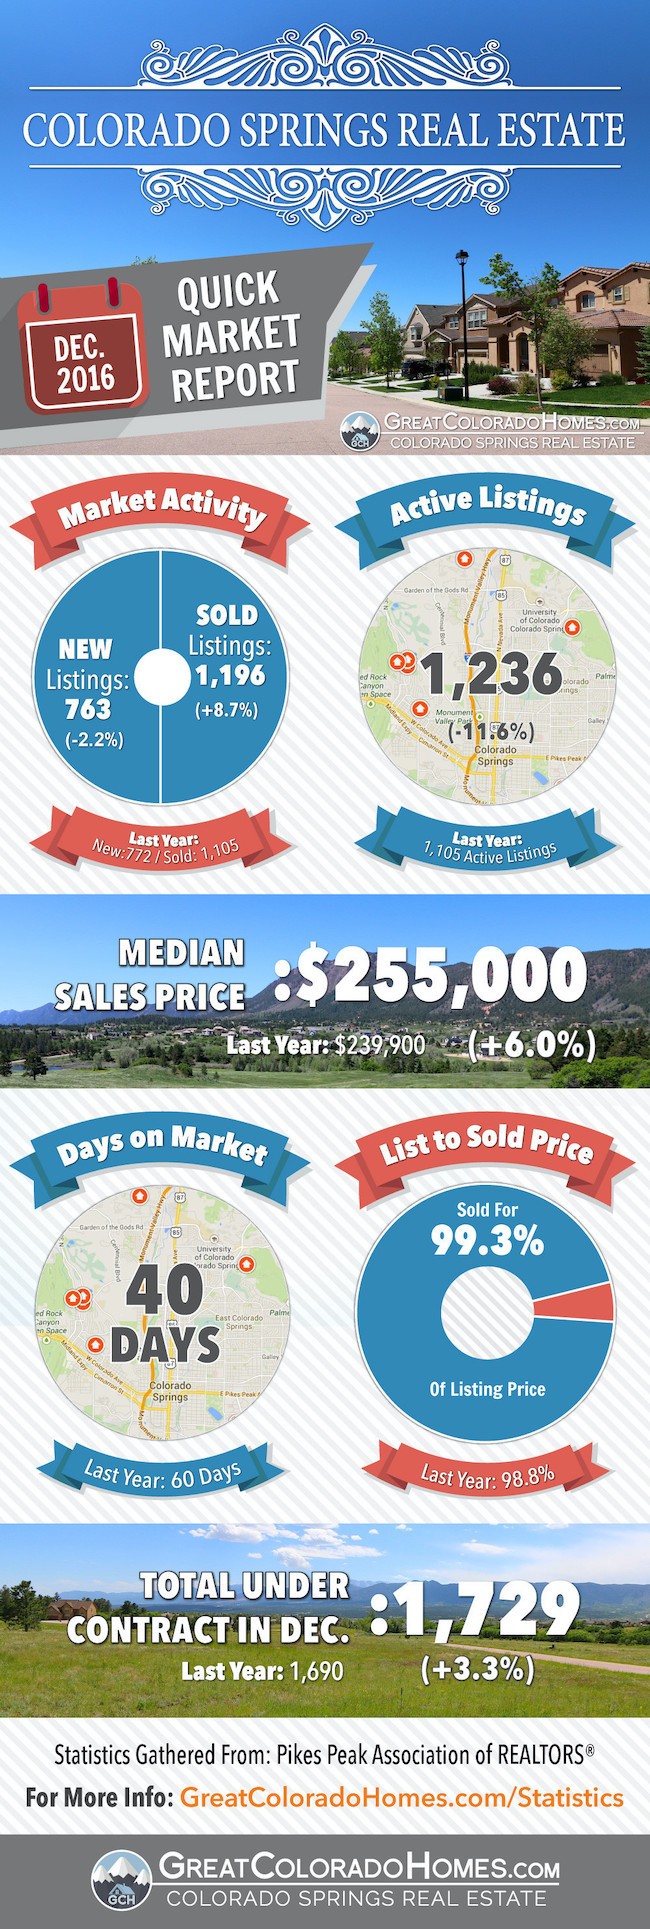 December 2016 Colorado Springs Real Estate Market Report